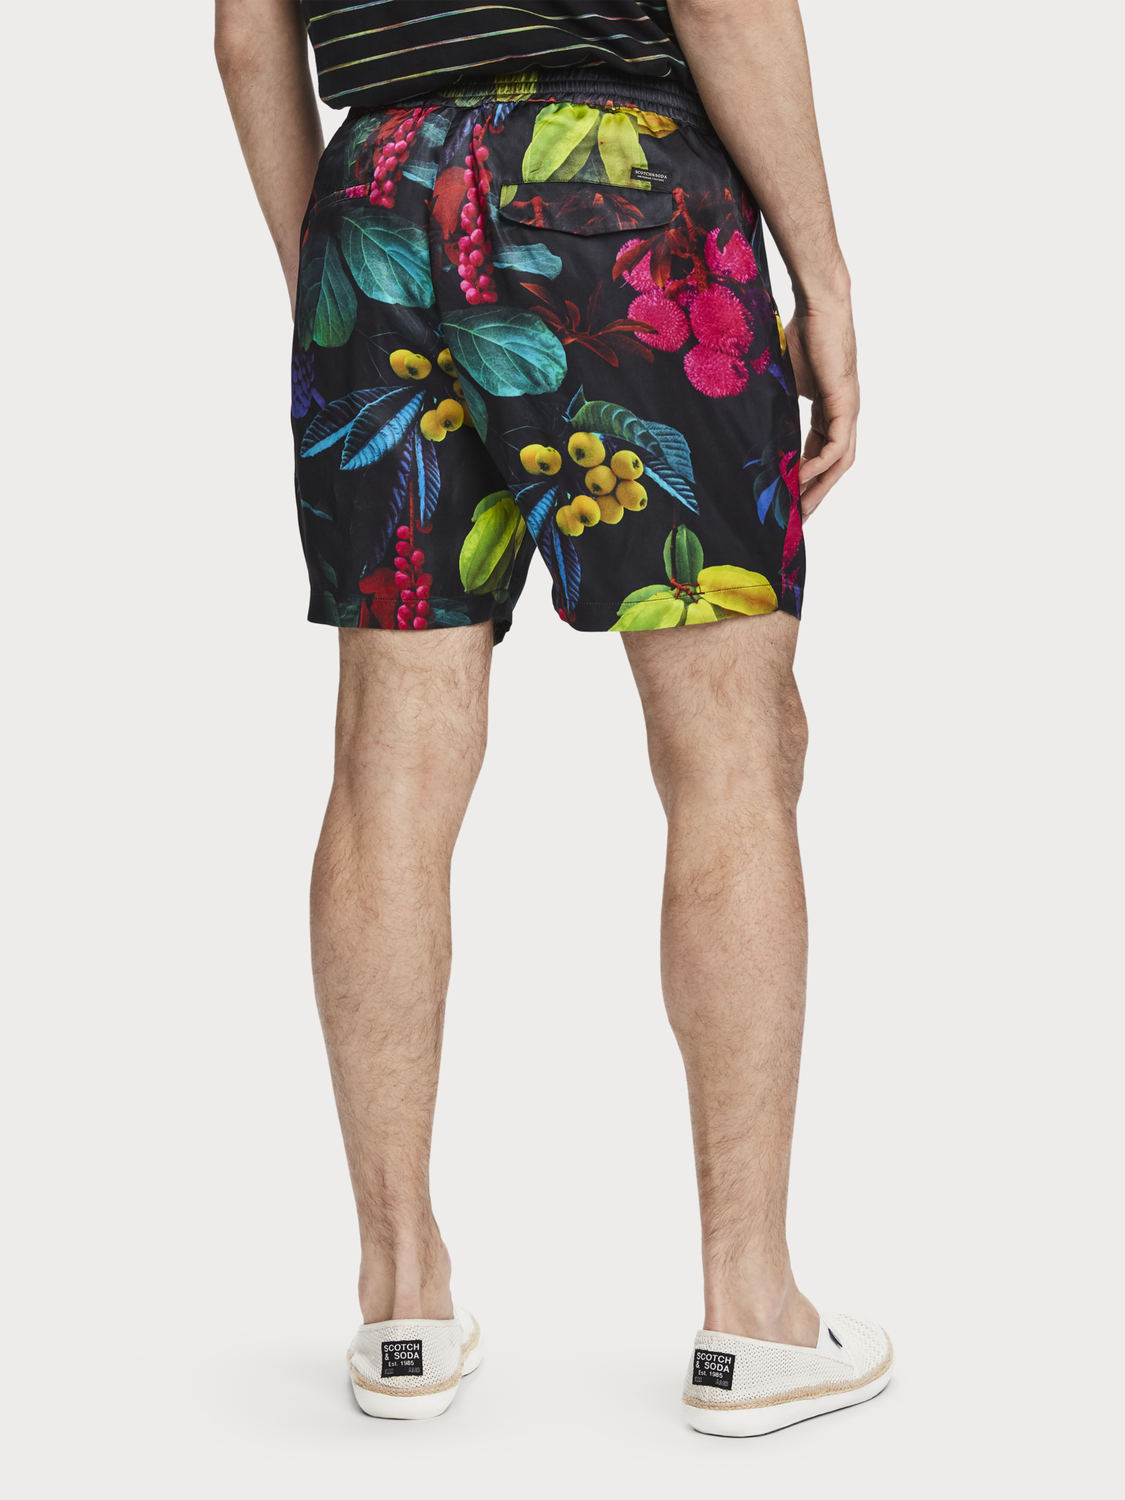 Hombre Shorts con estampado digital